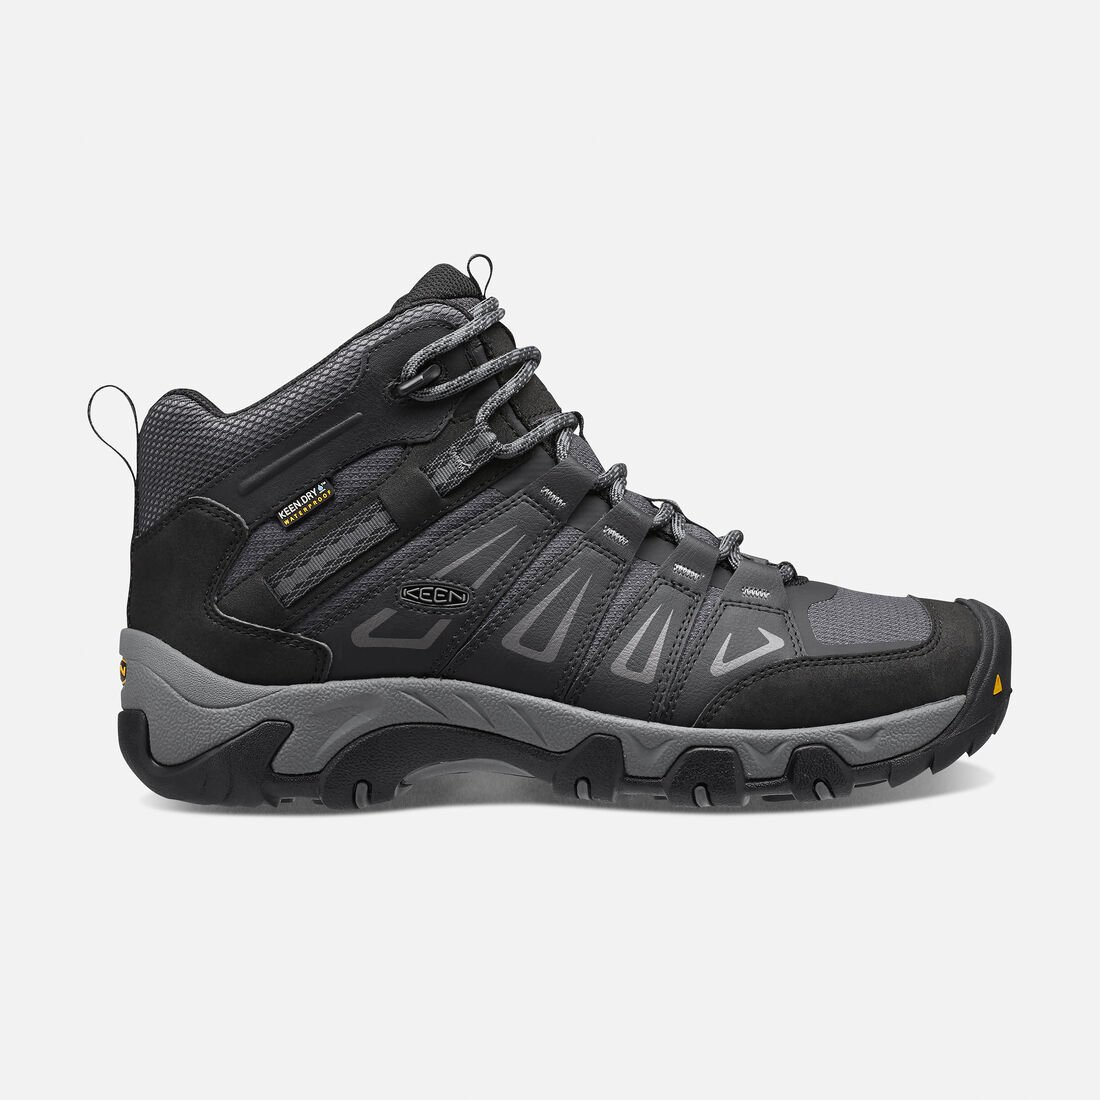 Men's Oakridge Waterproof Mid Wide in Magnet/Gargoyle - large view.